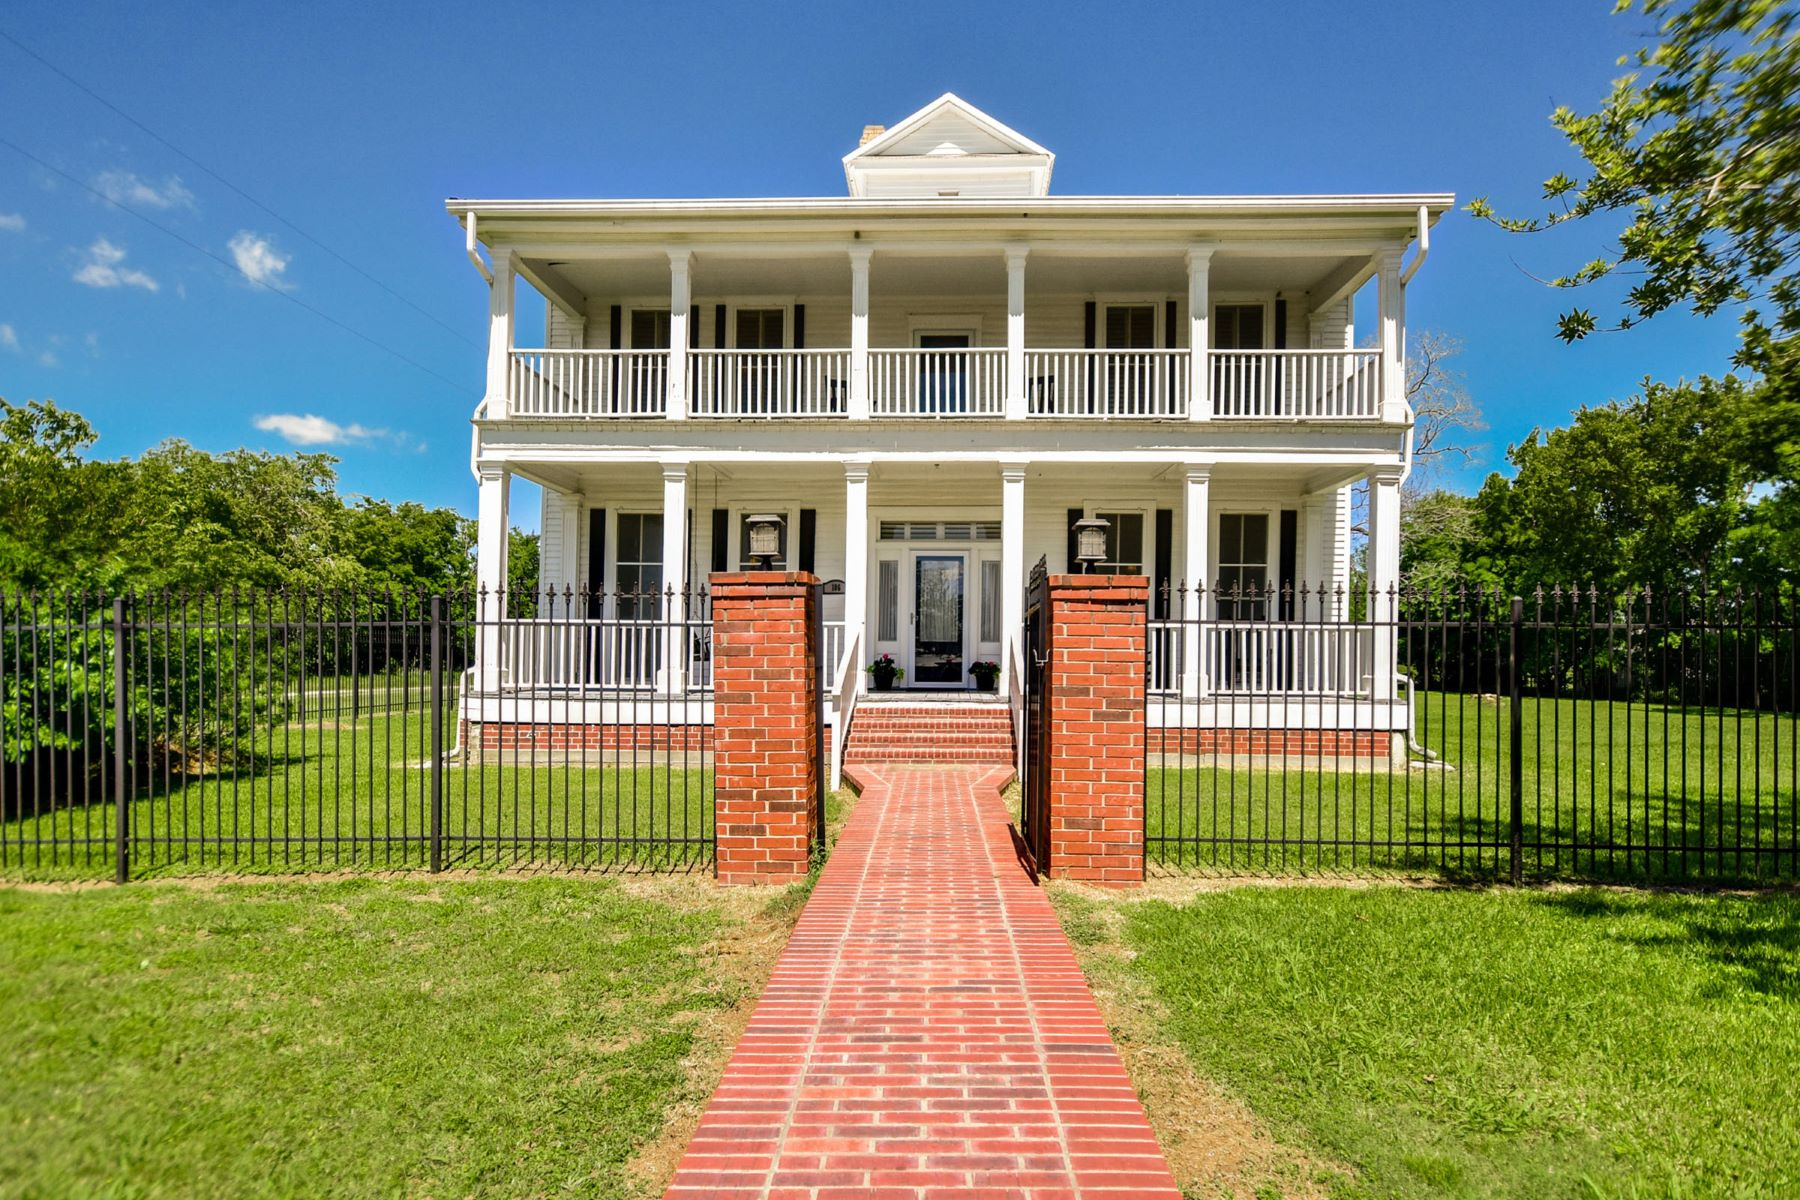 Single Family Home for Sale at Vintage Home with Updated Appeal 186 Washington St Paige, Texas 78659 United States